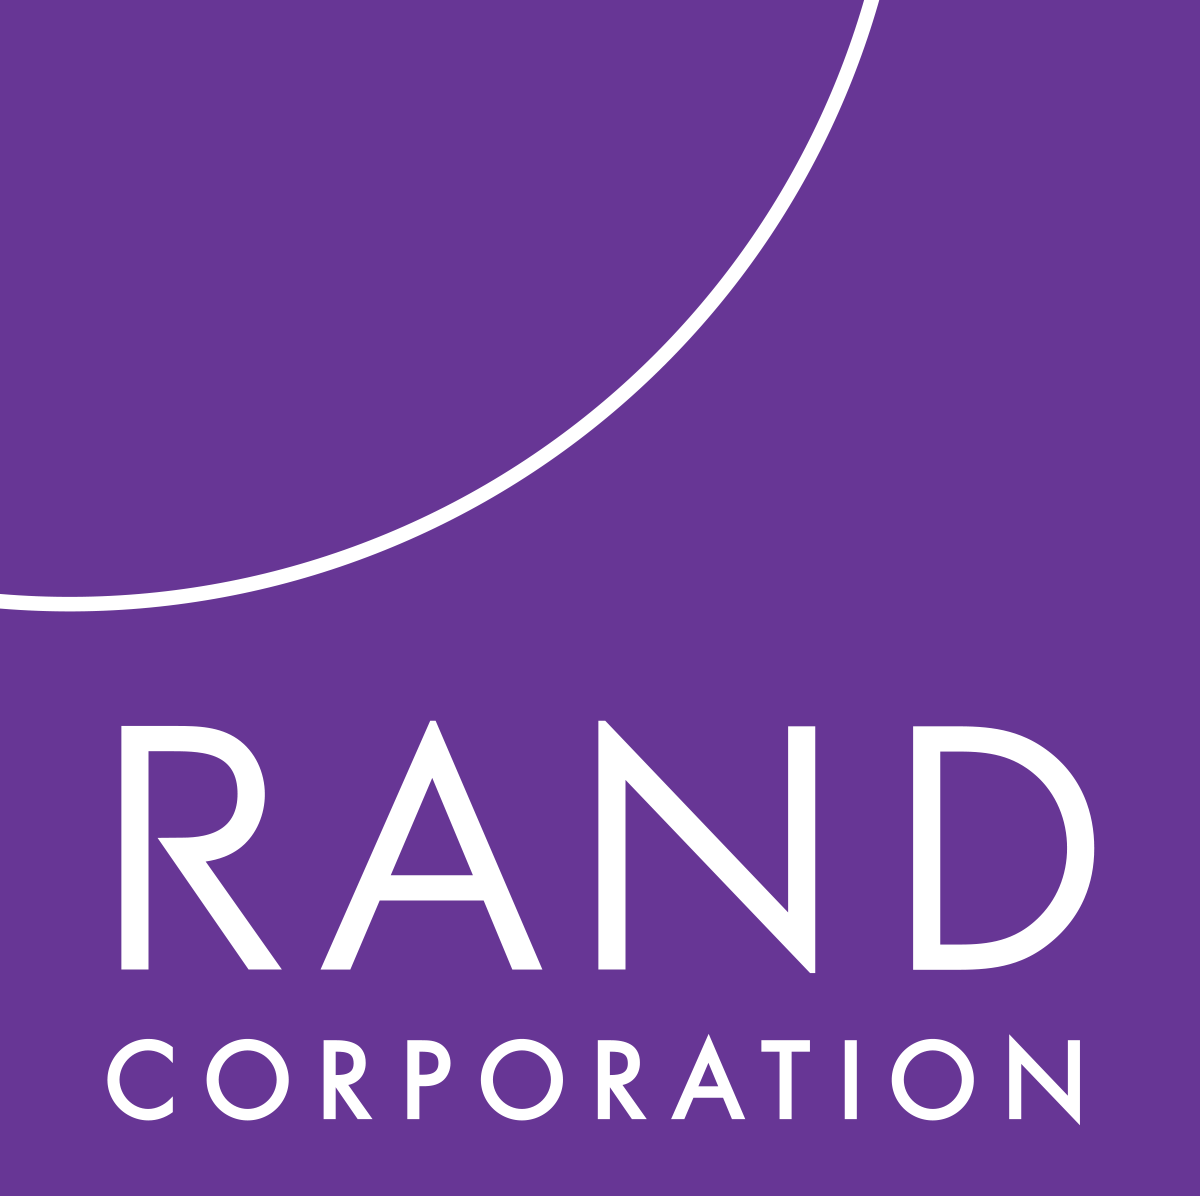 rand-corporation.png